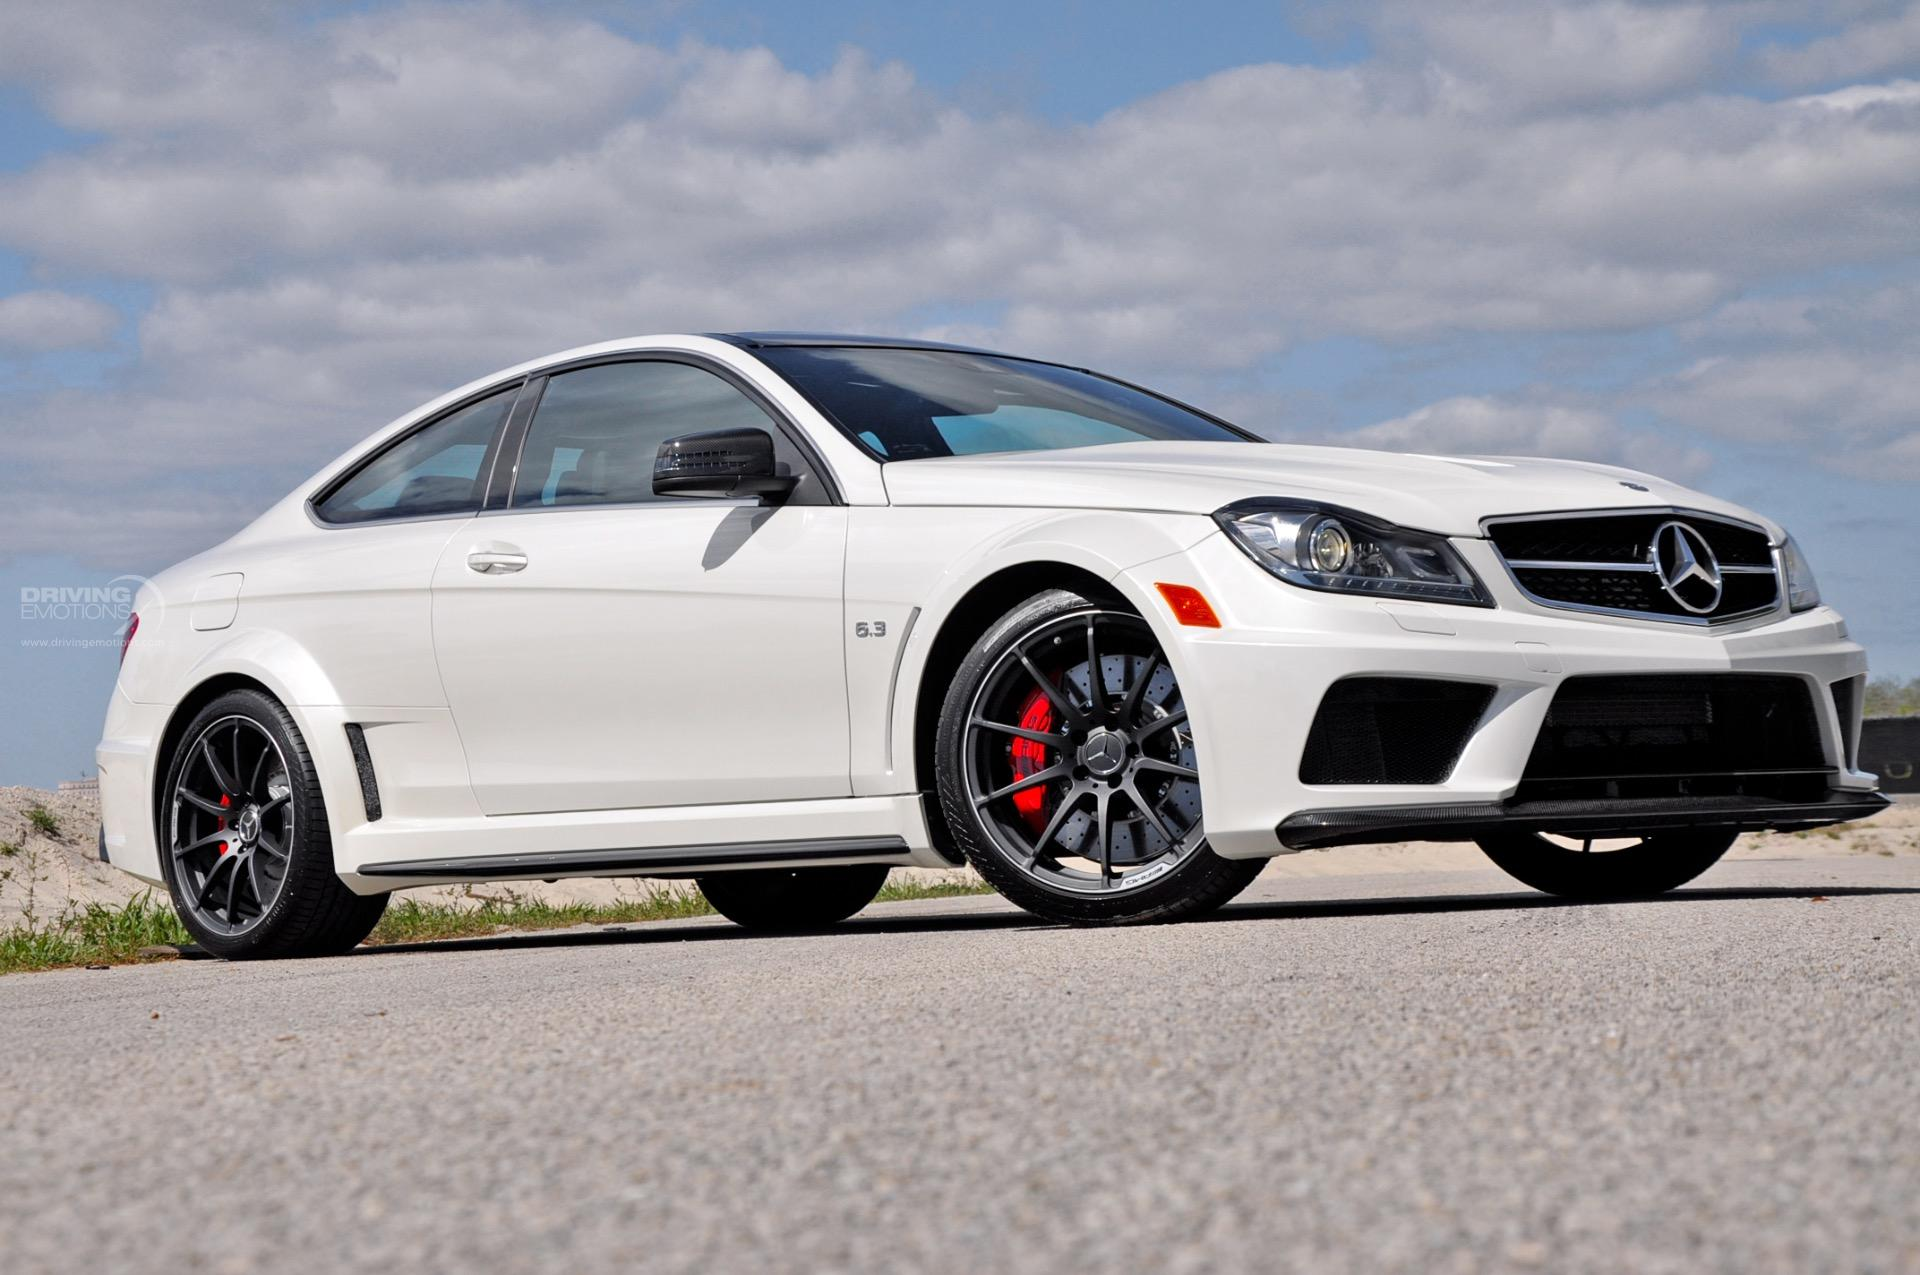 2013 mercedes benz c63 amg black series c63 amg black series driving emotions palm beach fl. Black Bedroom Furniture Sets. Home Design Ideas